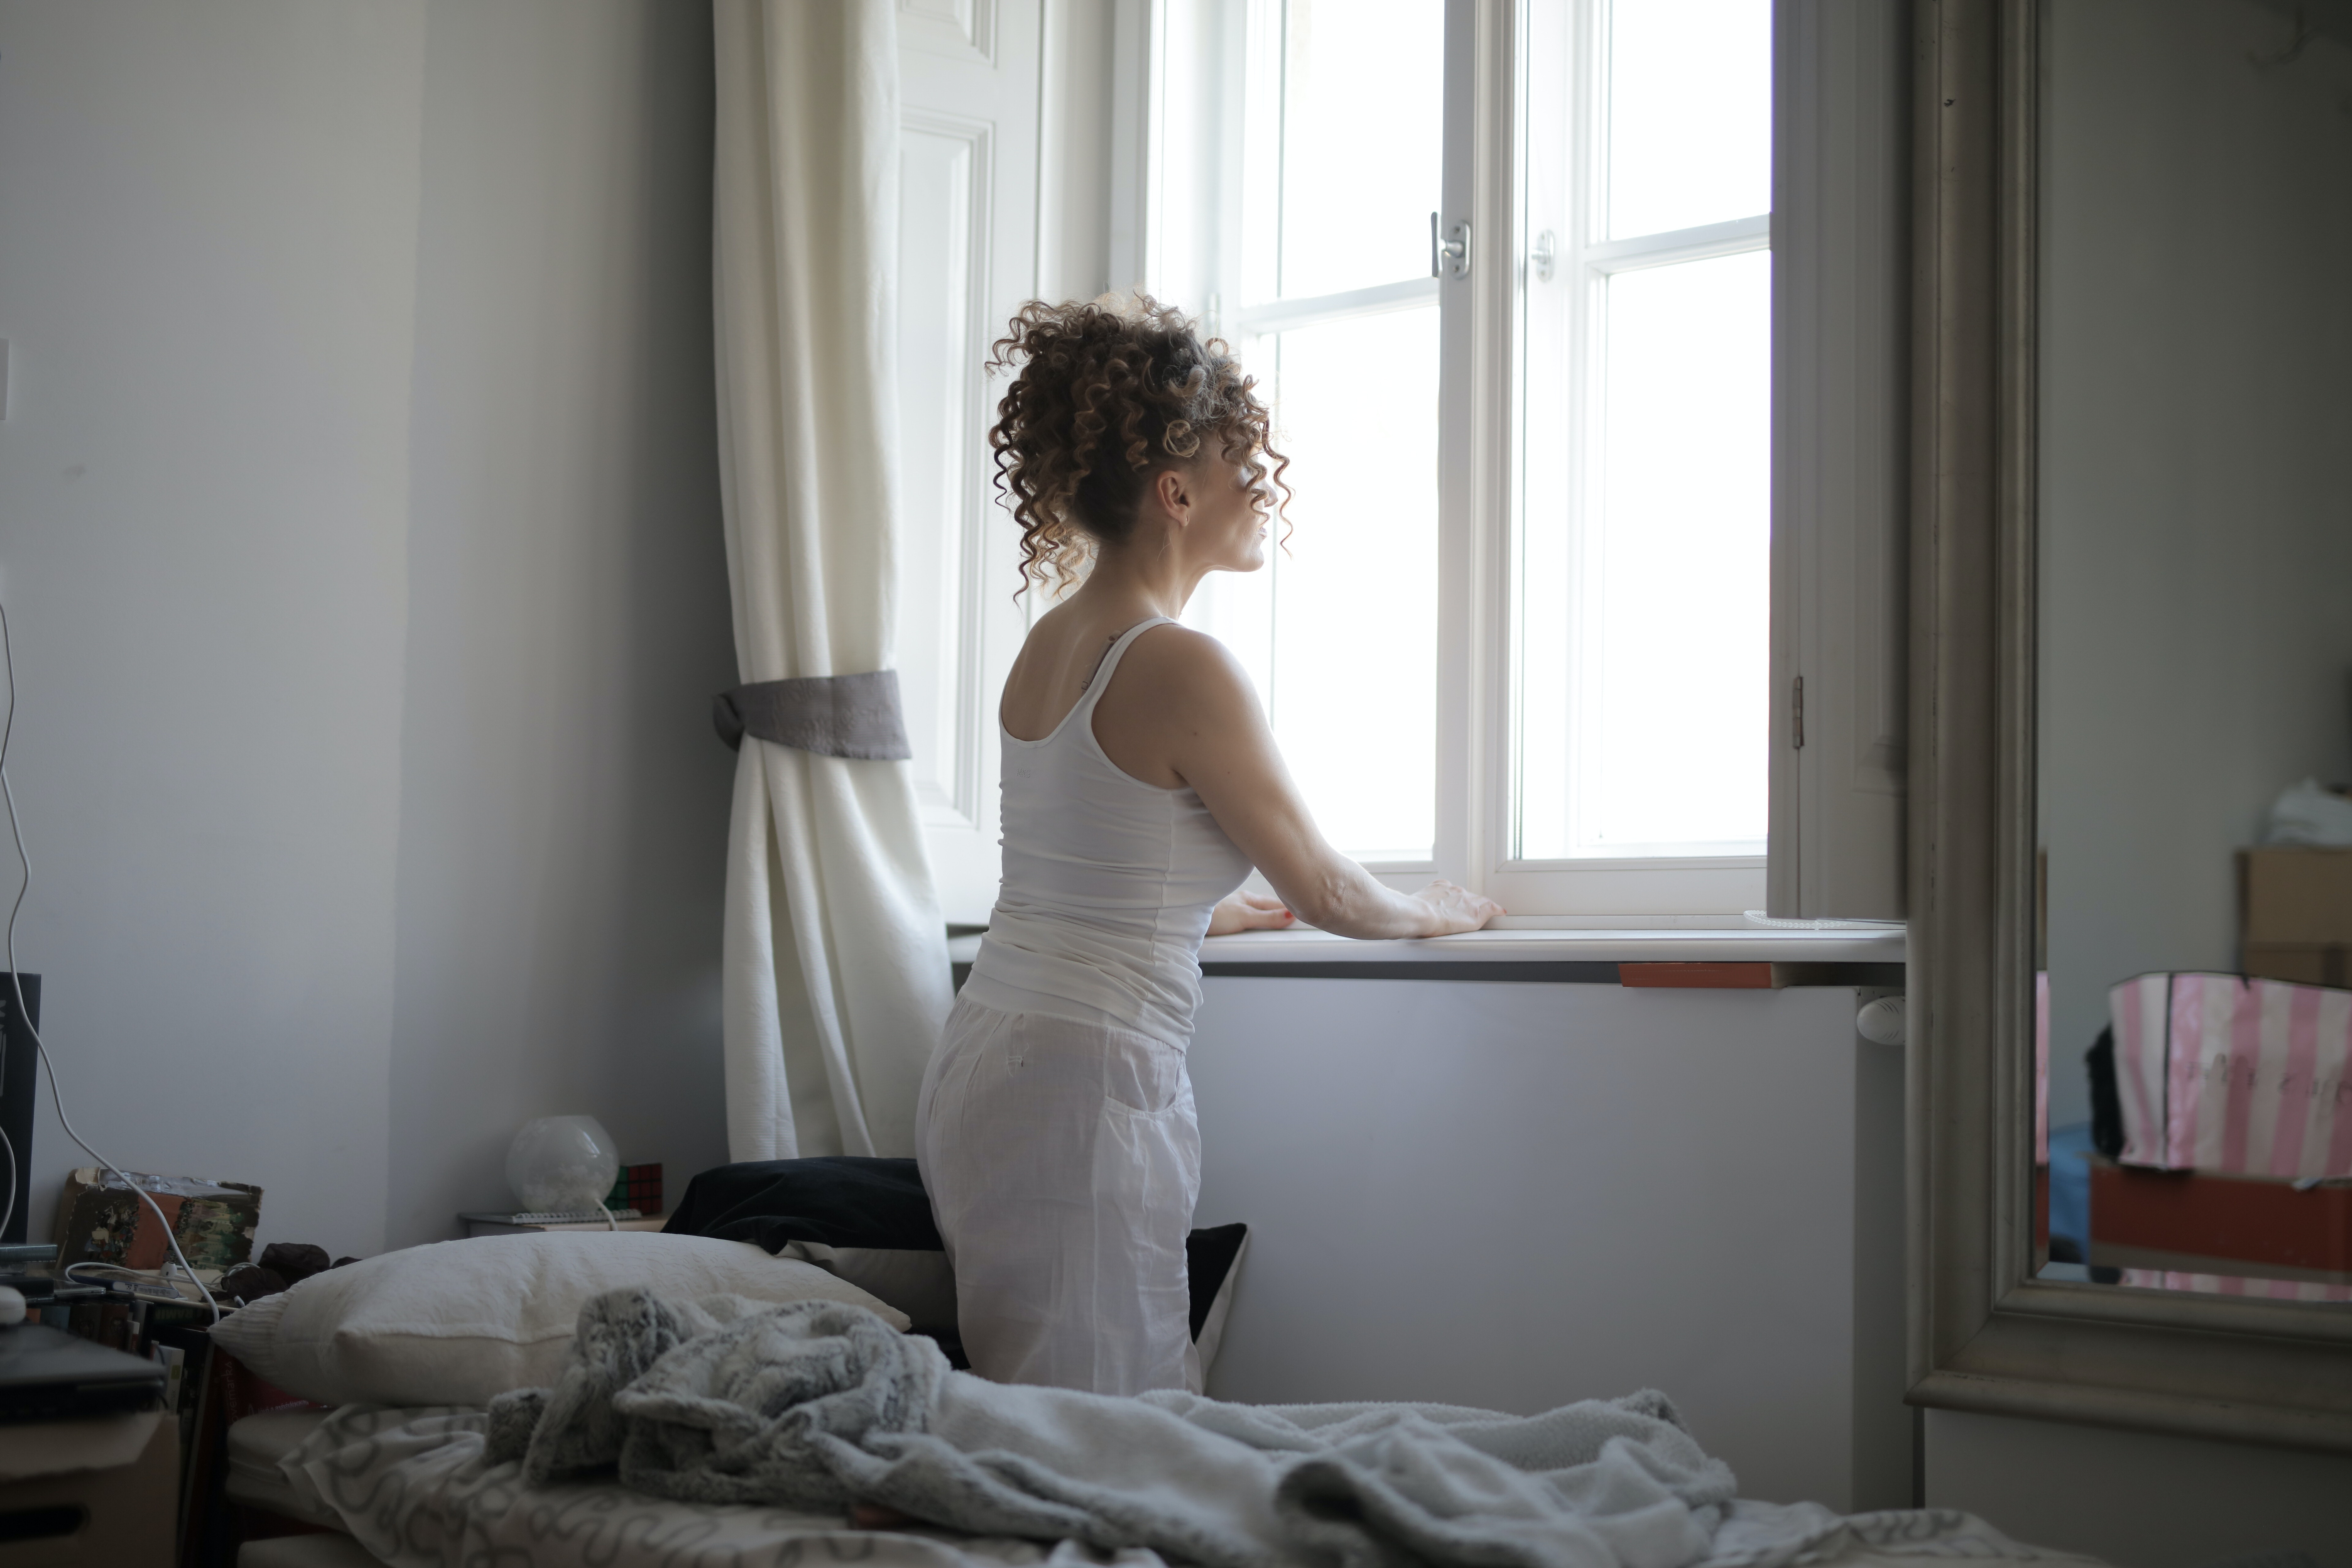 calm-woman-in-sleepwear-on-bed-at-home-3791605